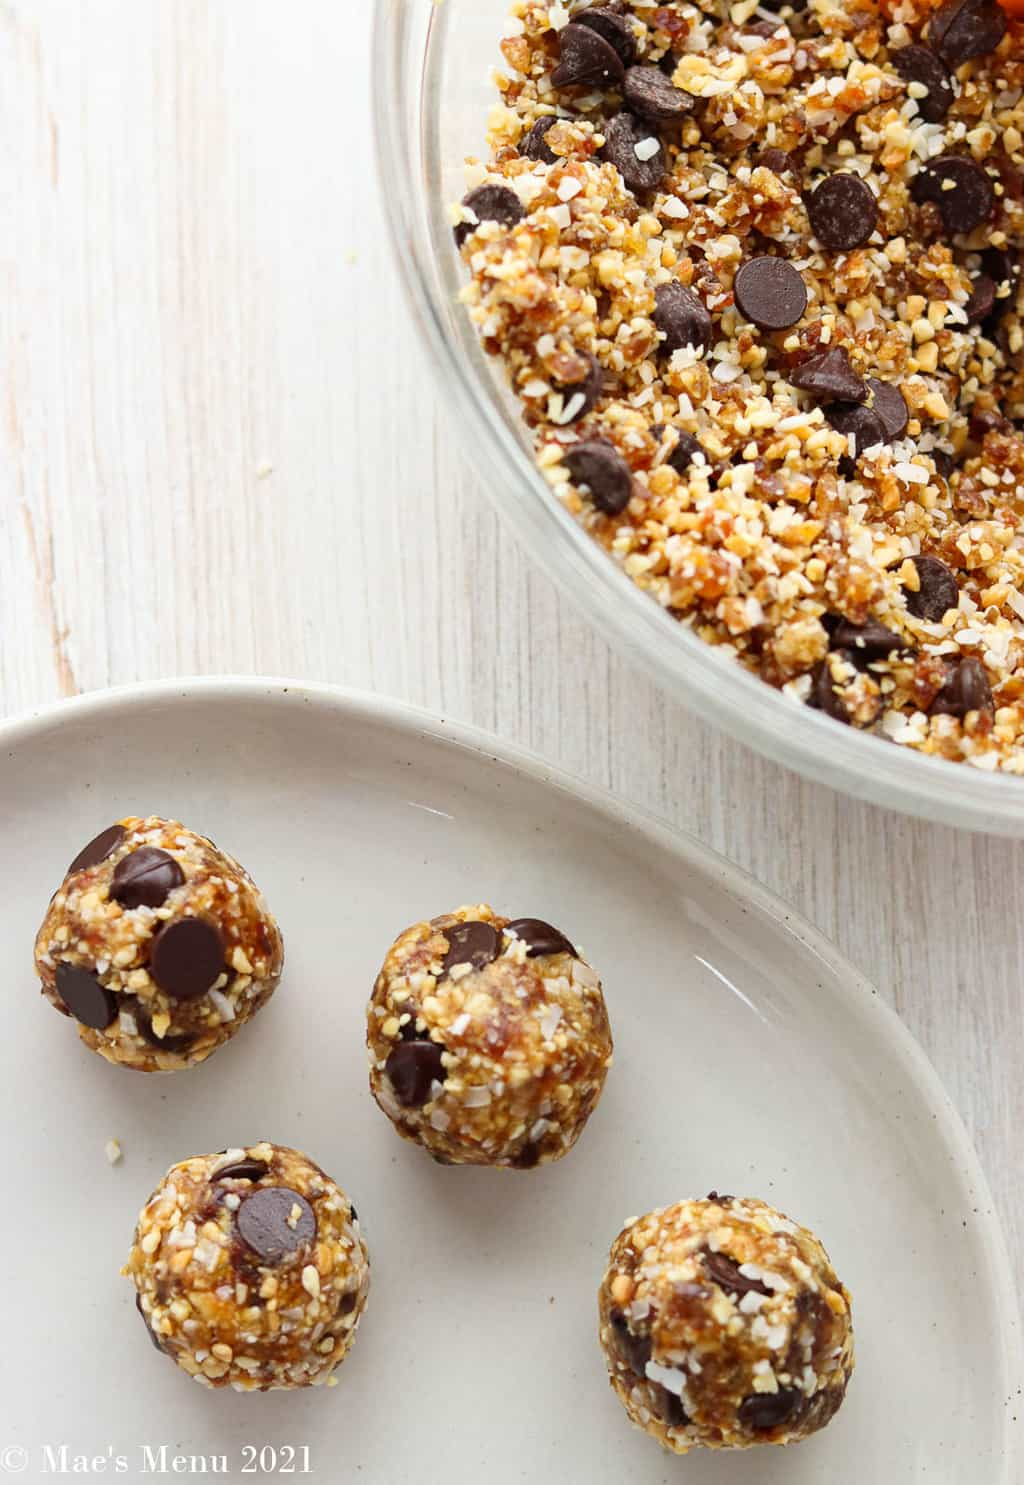 A few date balls rolled out on a plate next to the clear glass bowl of the date and coconut mixture